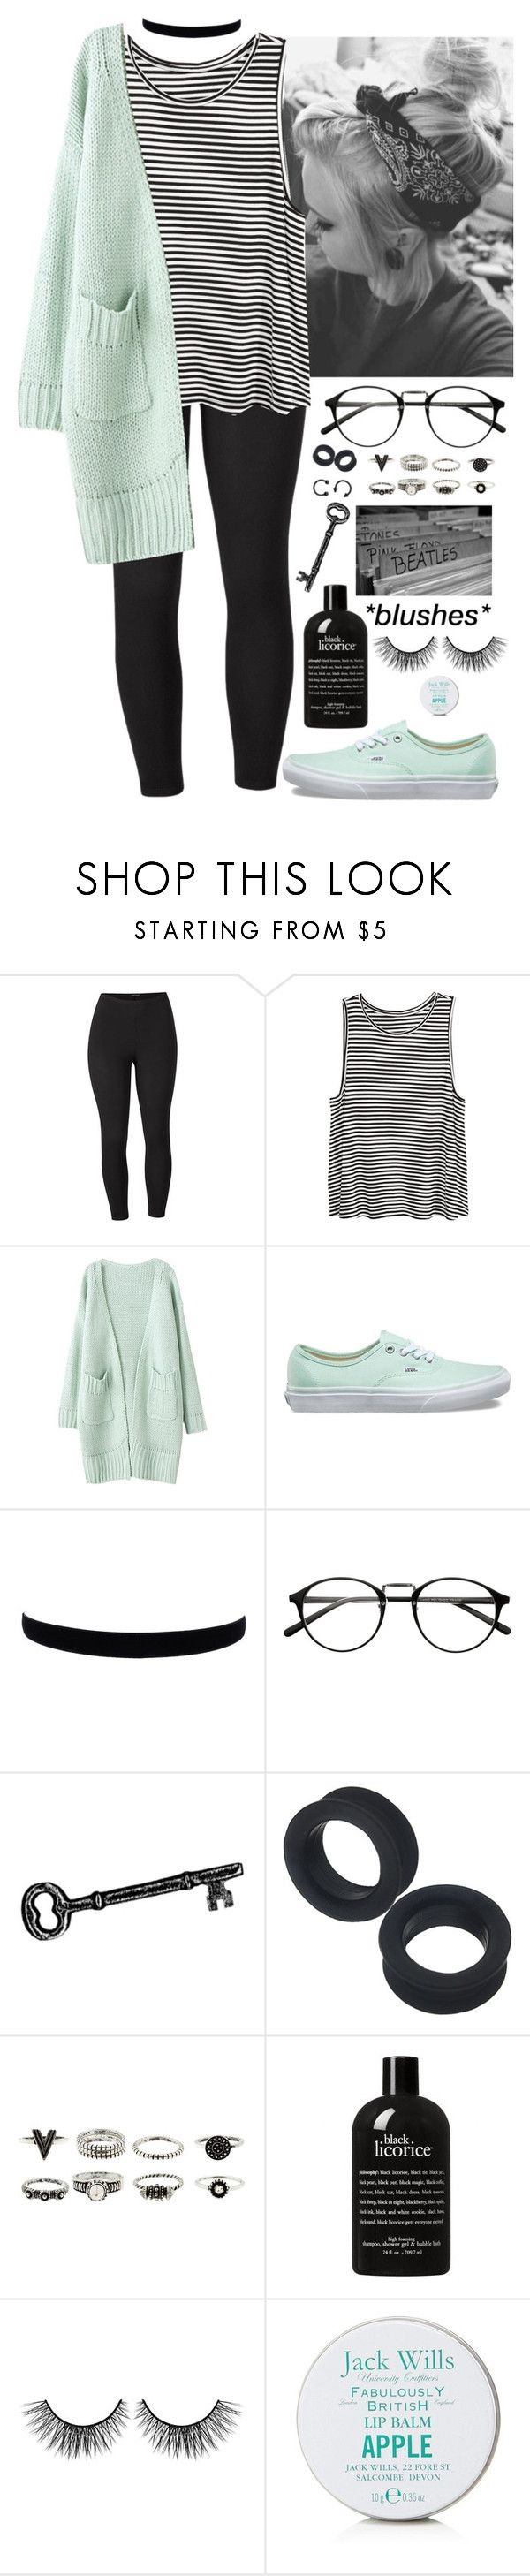 """Blush